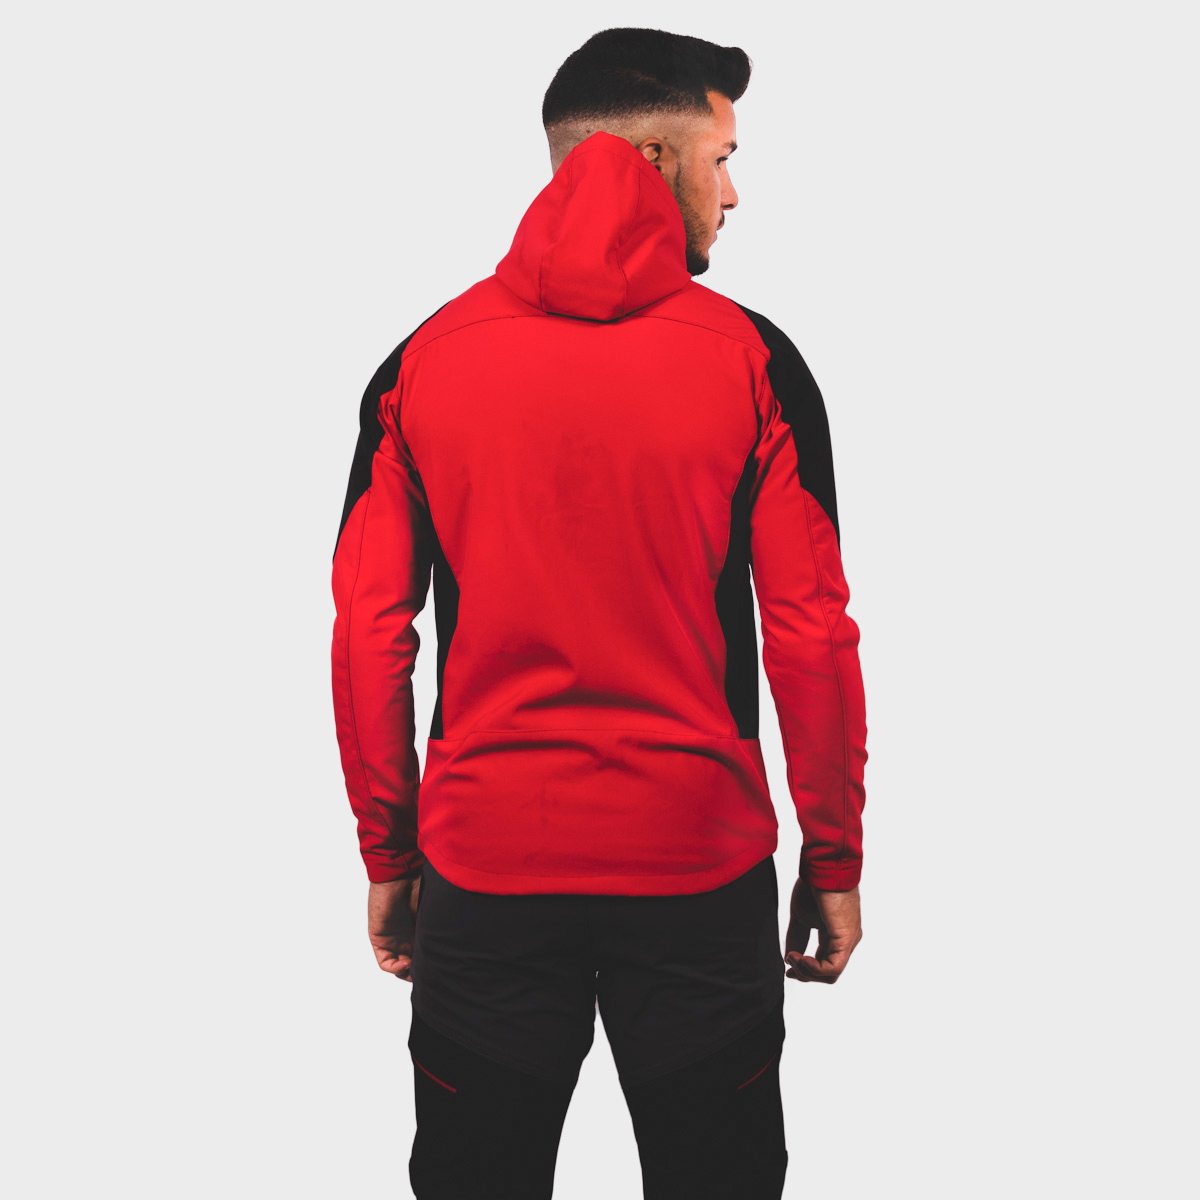 MAN'S VERAL SOFT SHELL RED